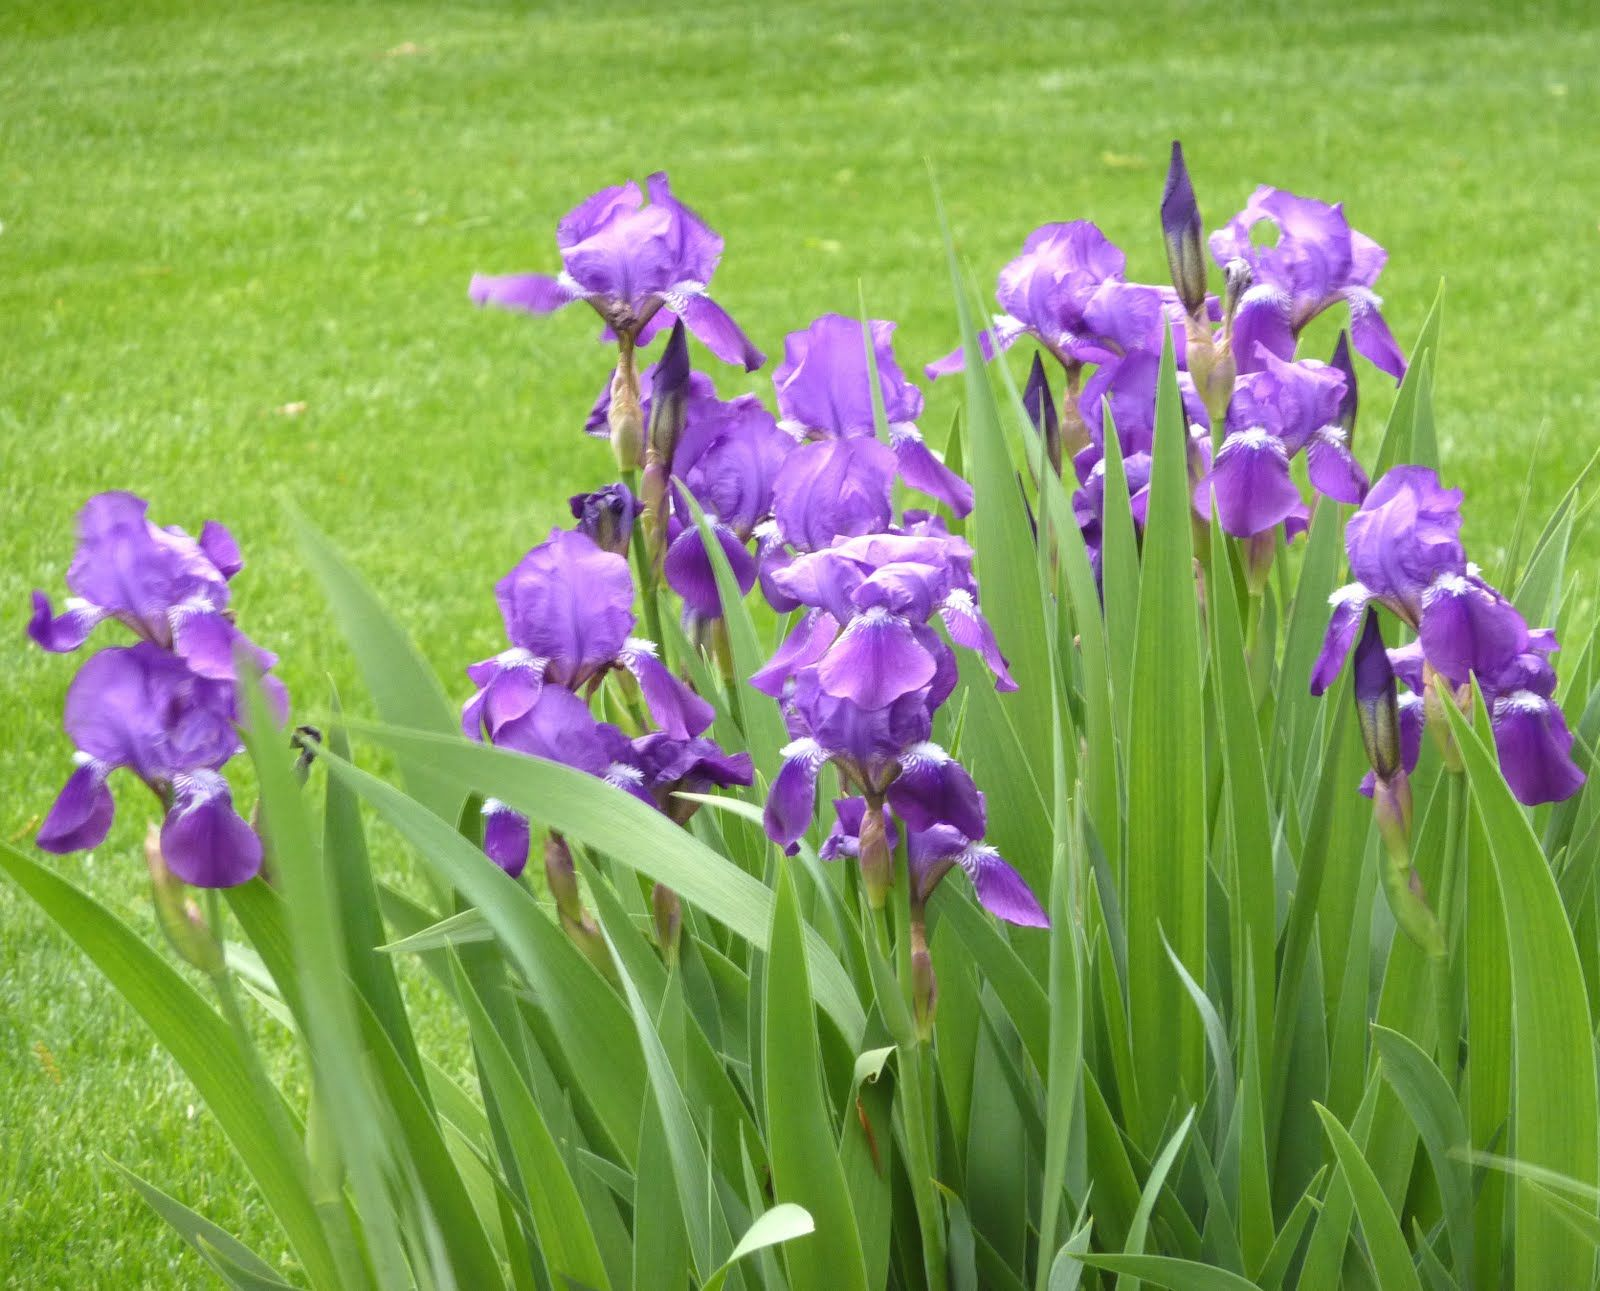 Purple iris meaning dgreetings com describes the purple iris as purple iris meaning dgreetings com describes the purple iris as follows a purple iris izmirmasajfo